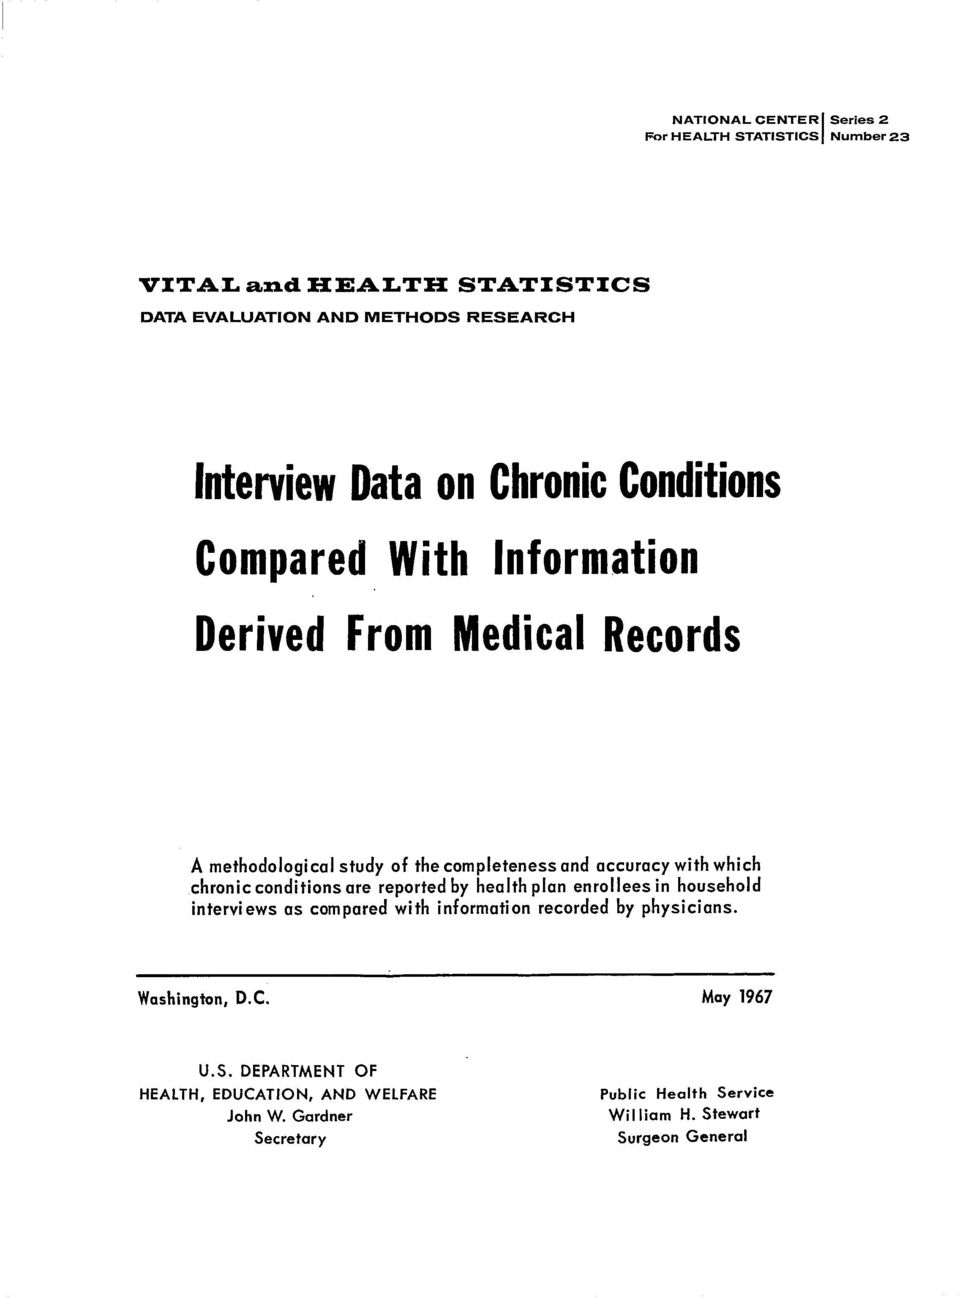 ChronicConditions Compared With nformation Derived From Medical Records A methodological study of the completeness and accuracy with which chronic